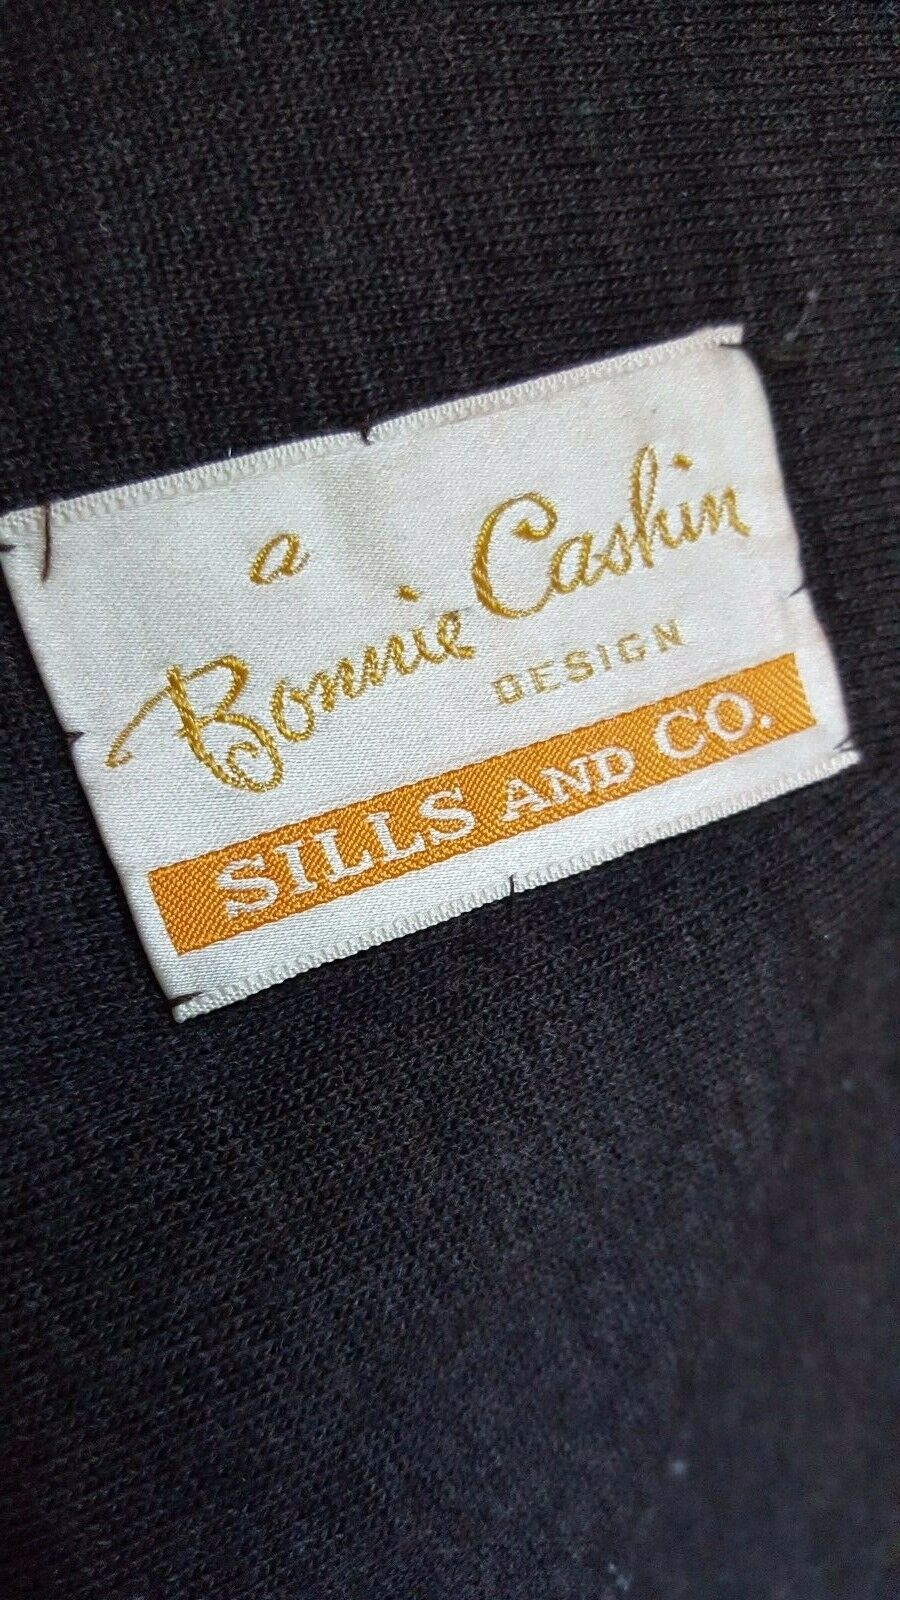 Vintage 1960s BONNIE CASHIN SILLS & CO Quilted Gl… - image 9